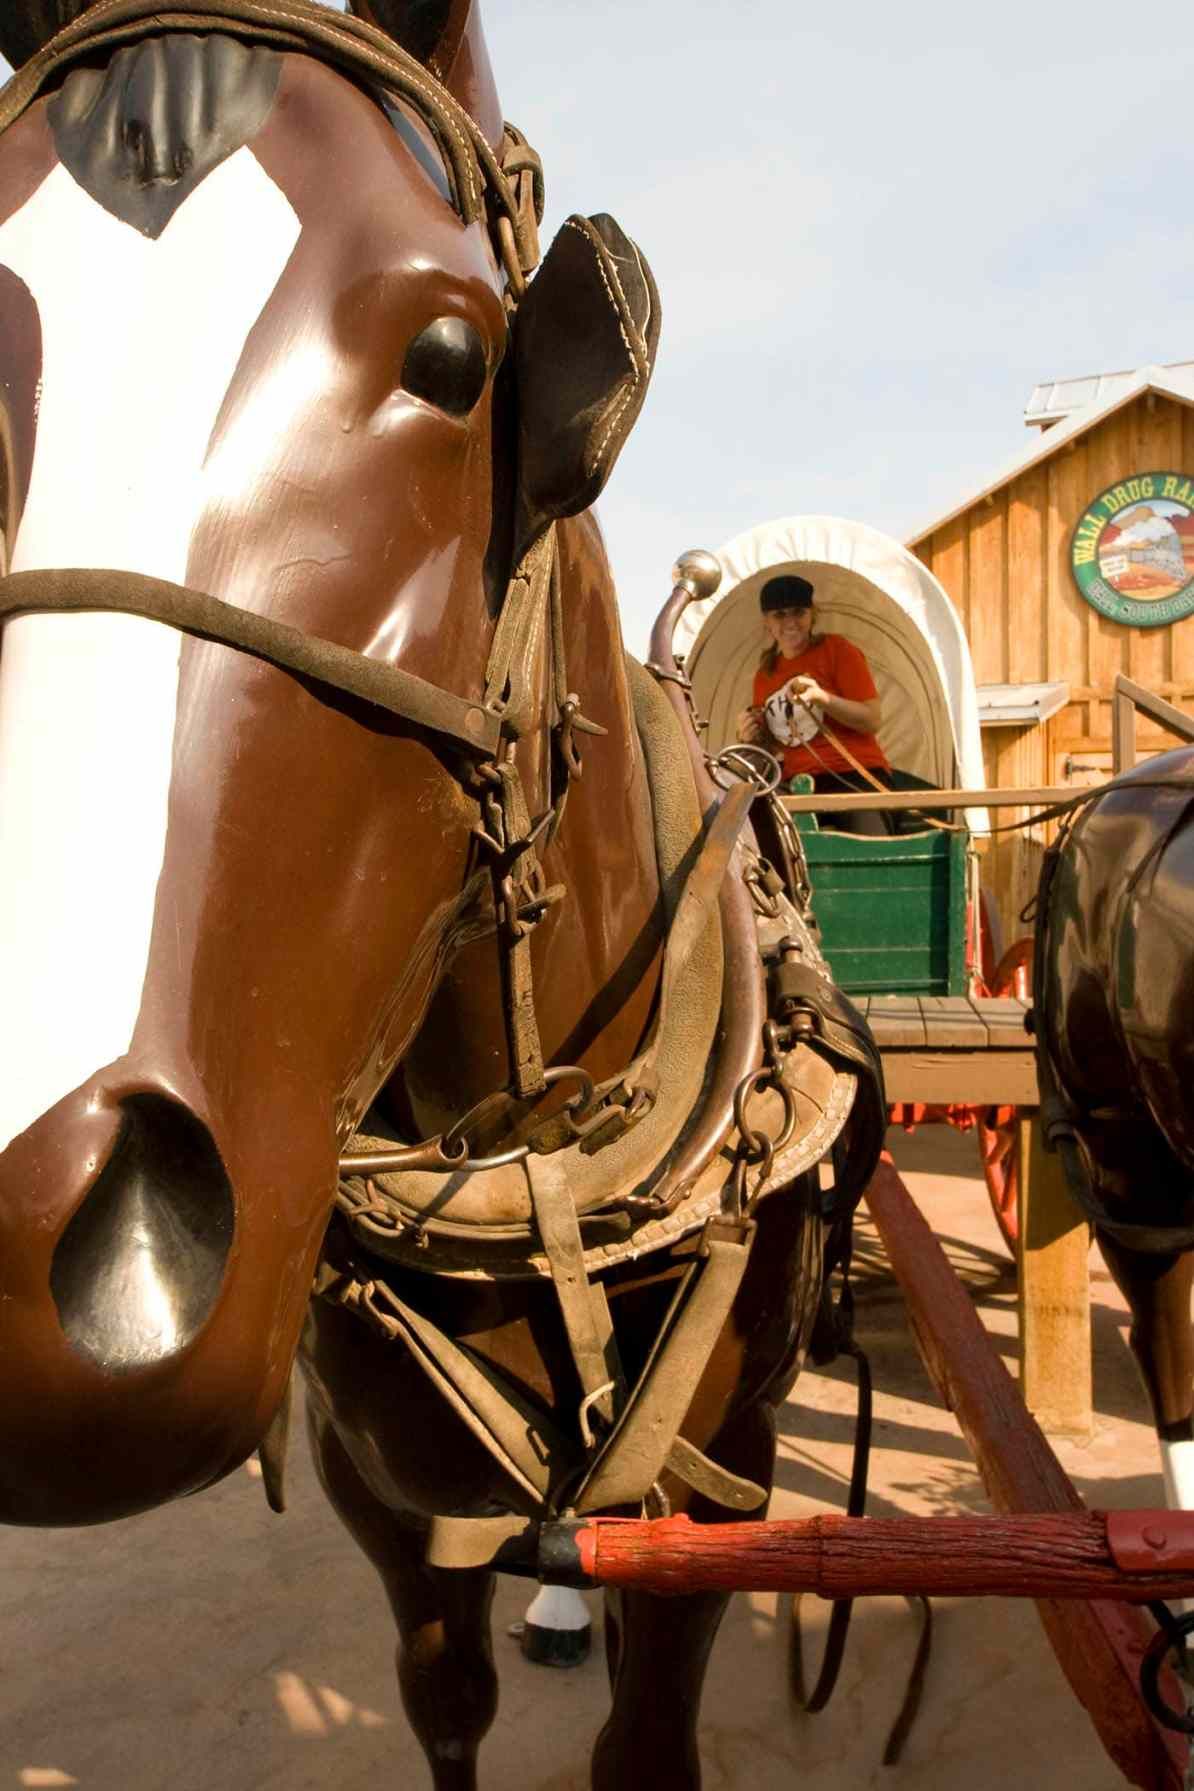 Horse and Carriage Replica at Wall Drug Store in Wall, South Dakota